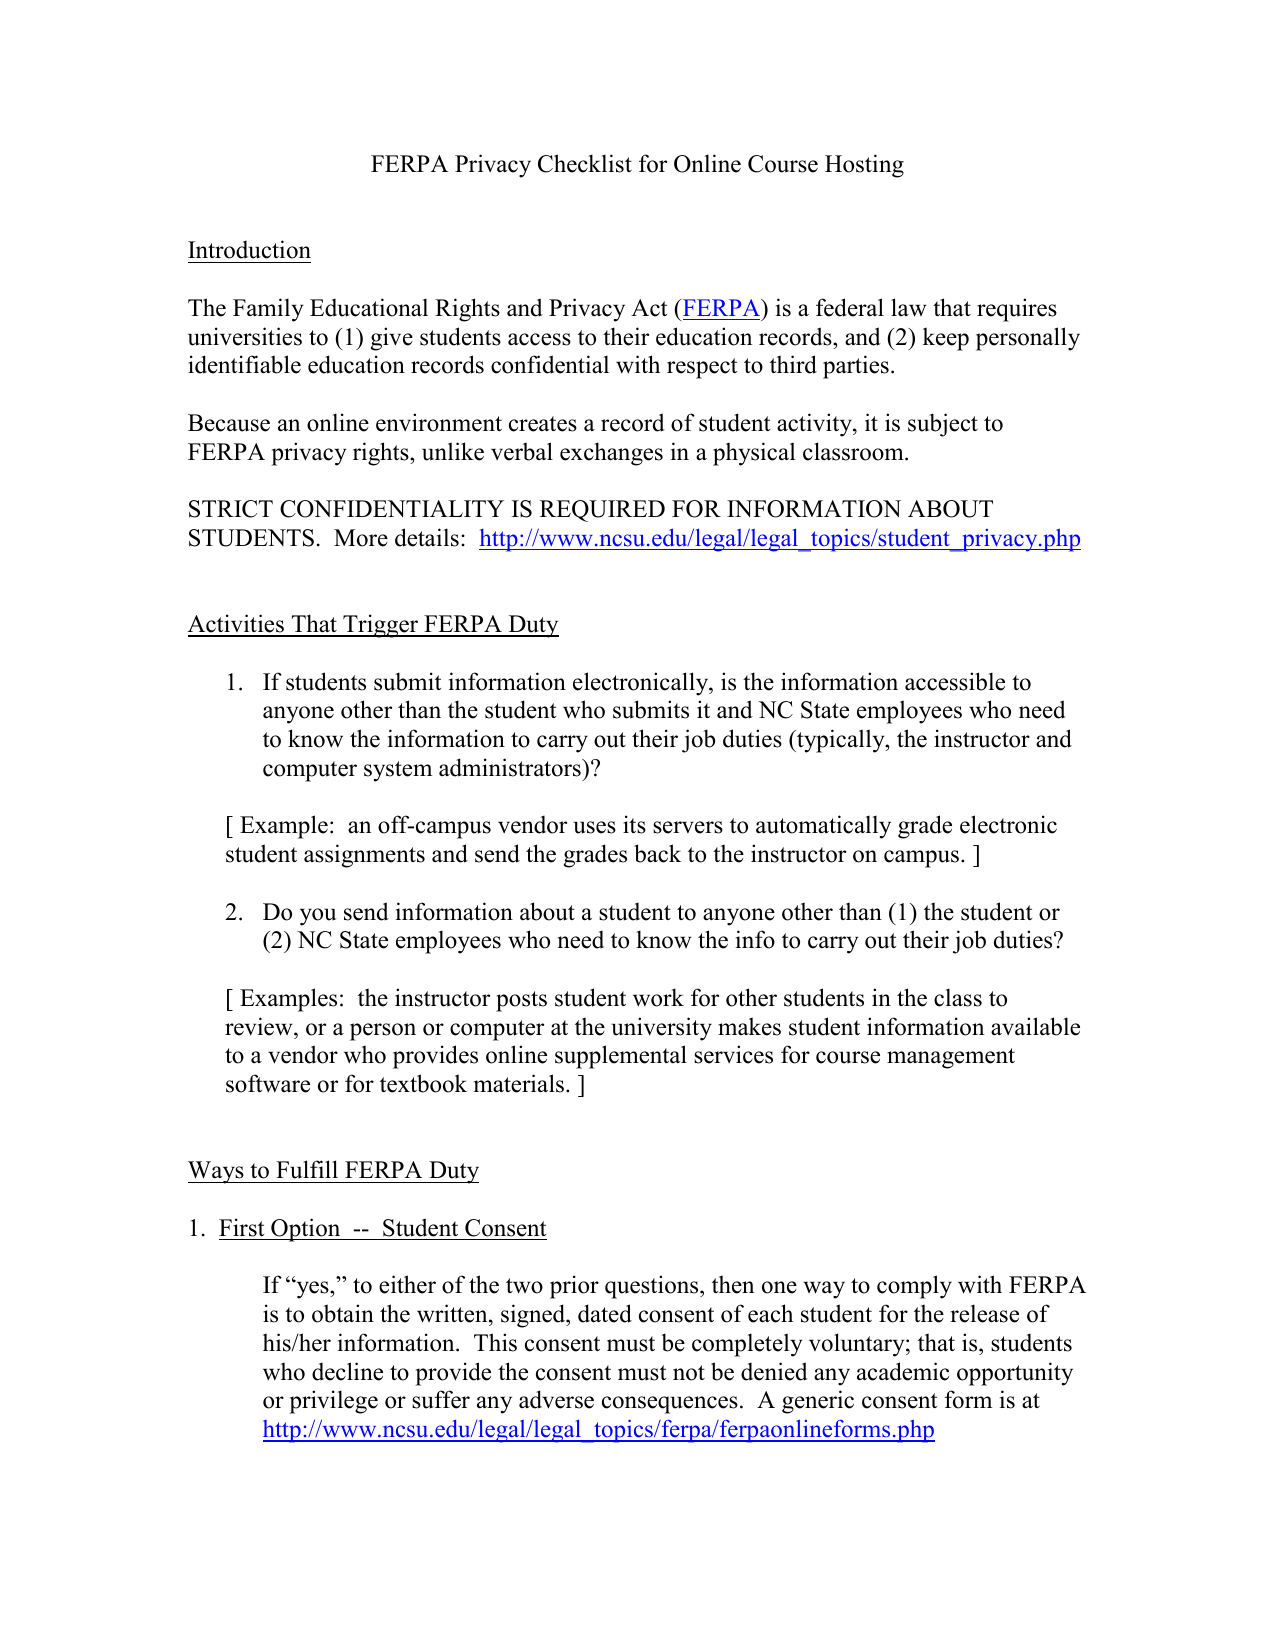 ferpa form fit  FERPA Privacy Checklist for Online Course-Hosting